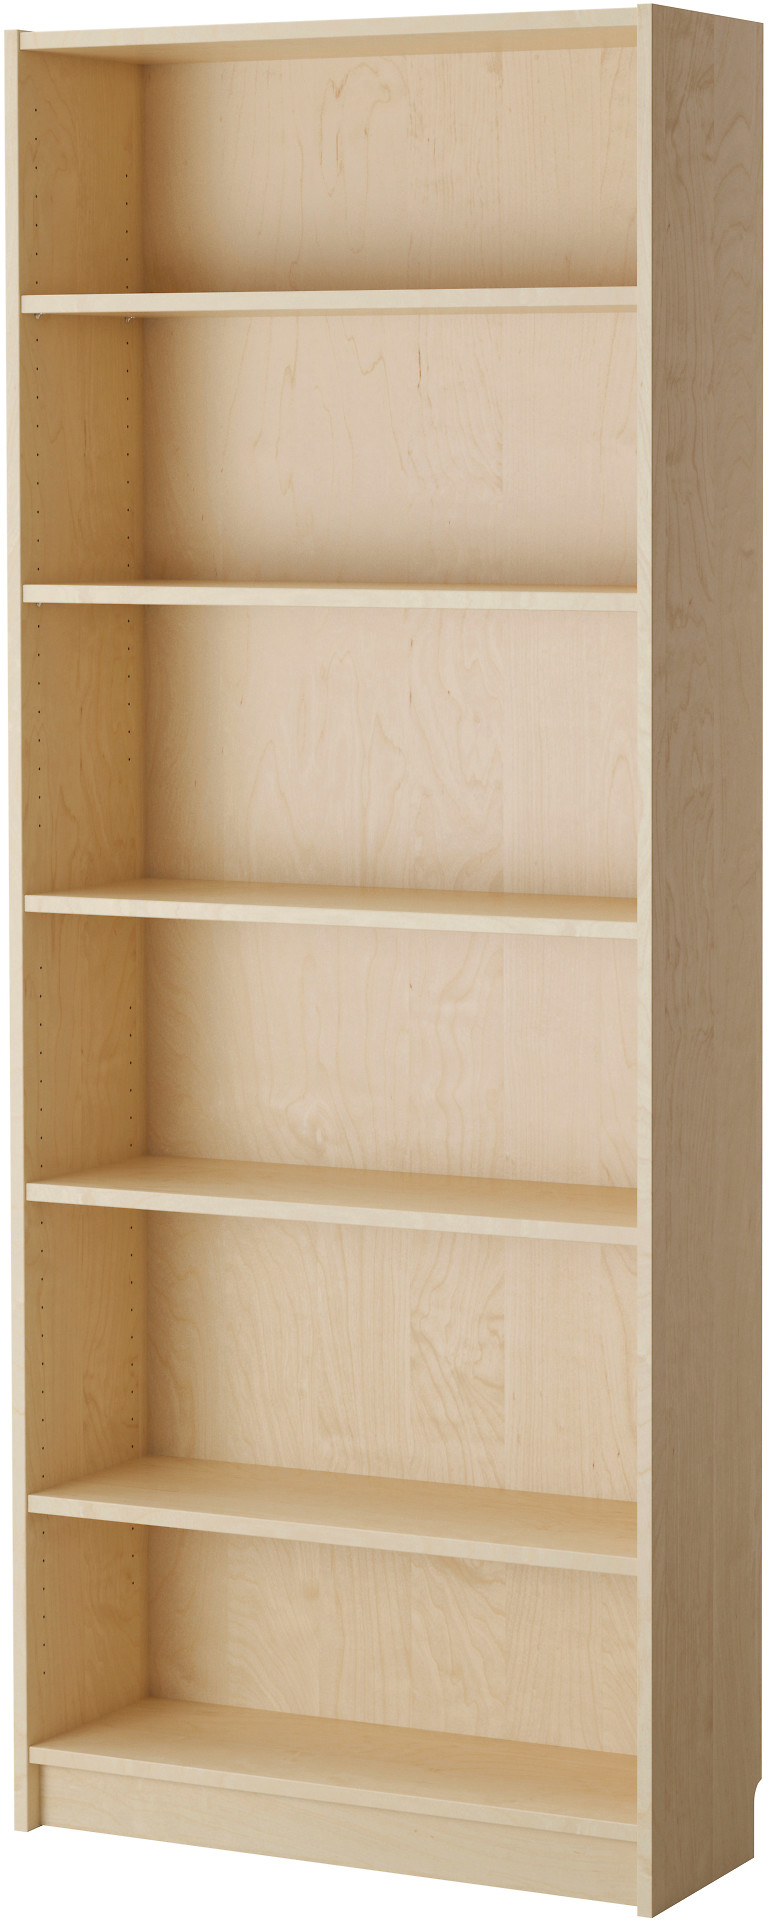 BILLY Bookcase - birch veneer - IKEA